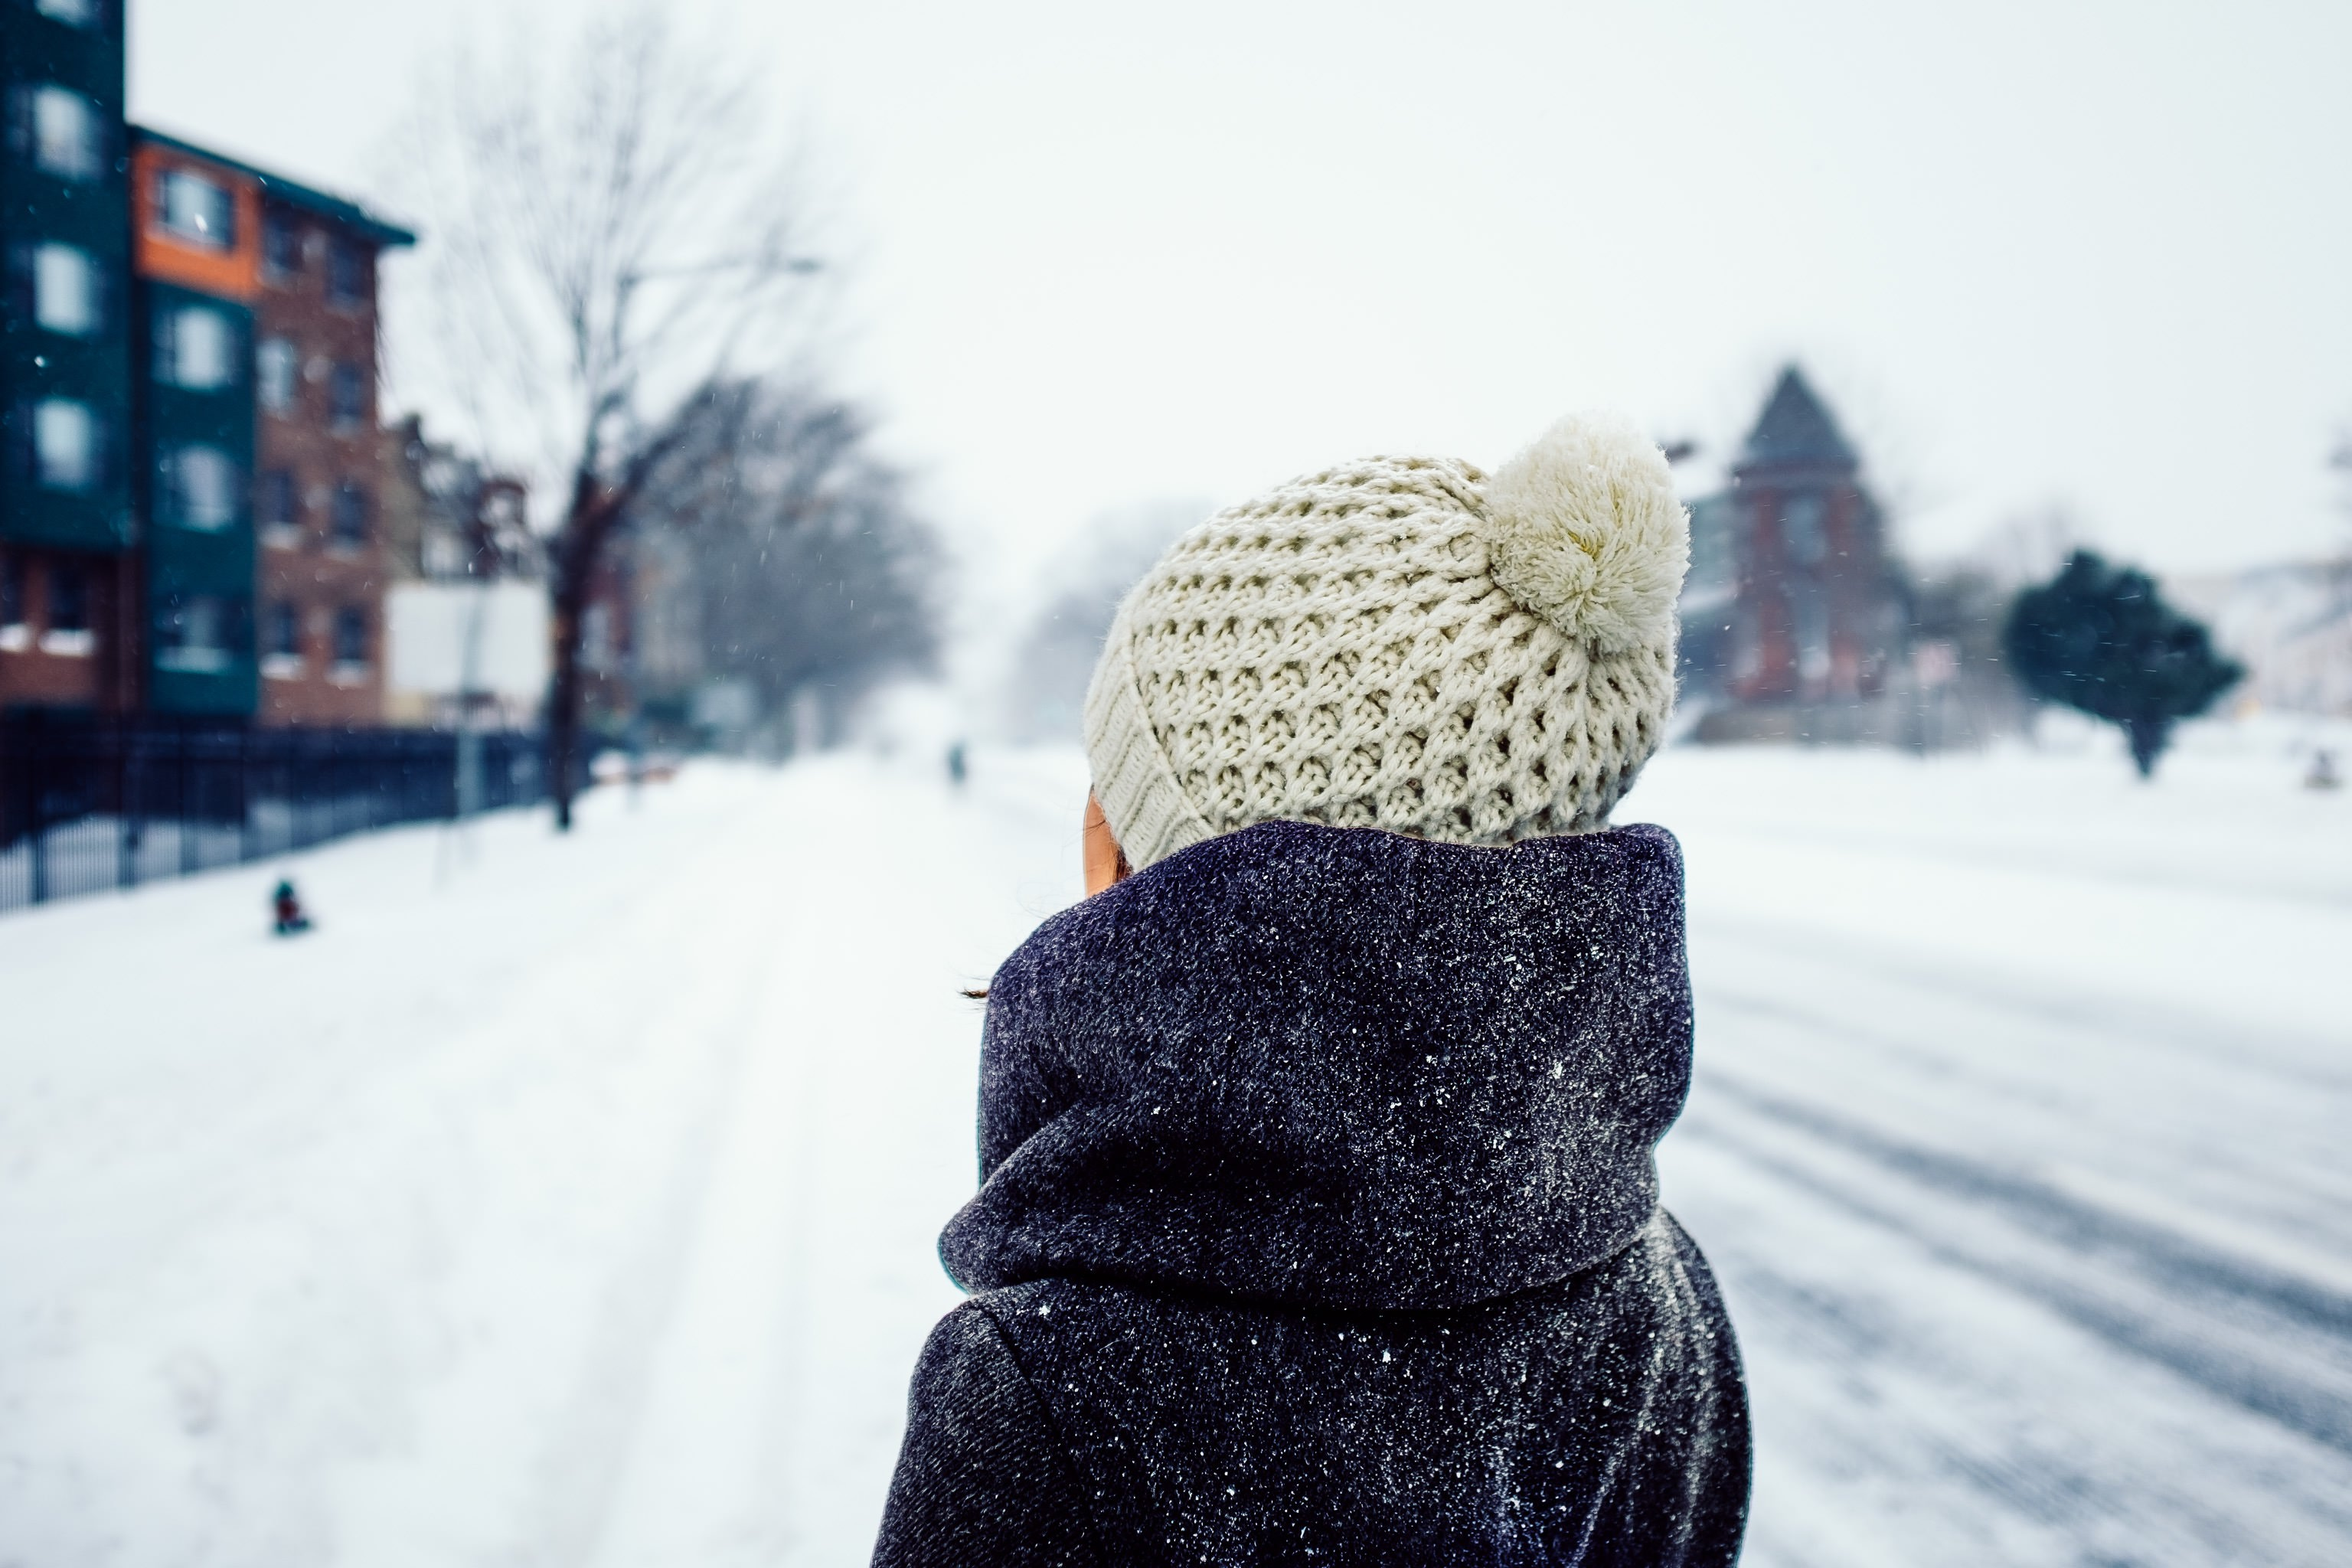 Pictured: Girl bundled up in warm clothing standing outside as snow falls.